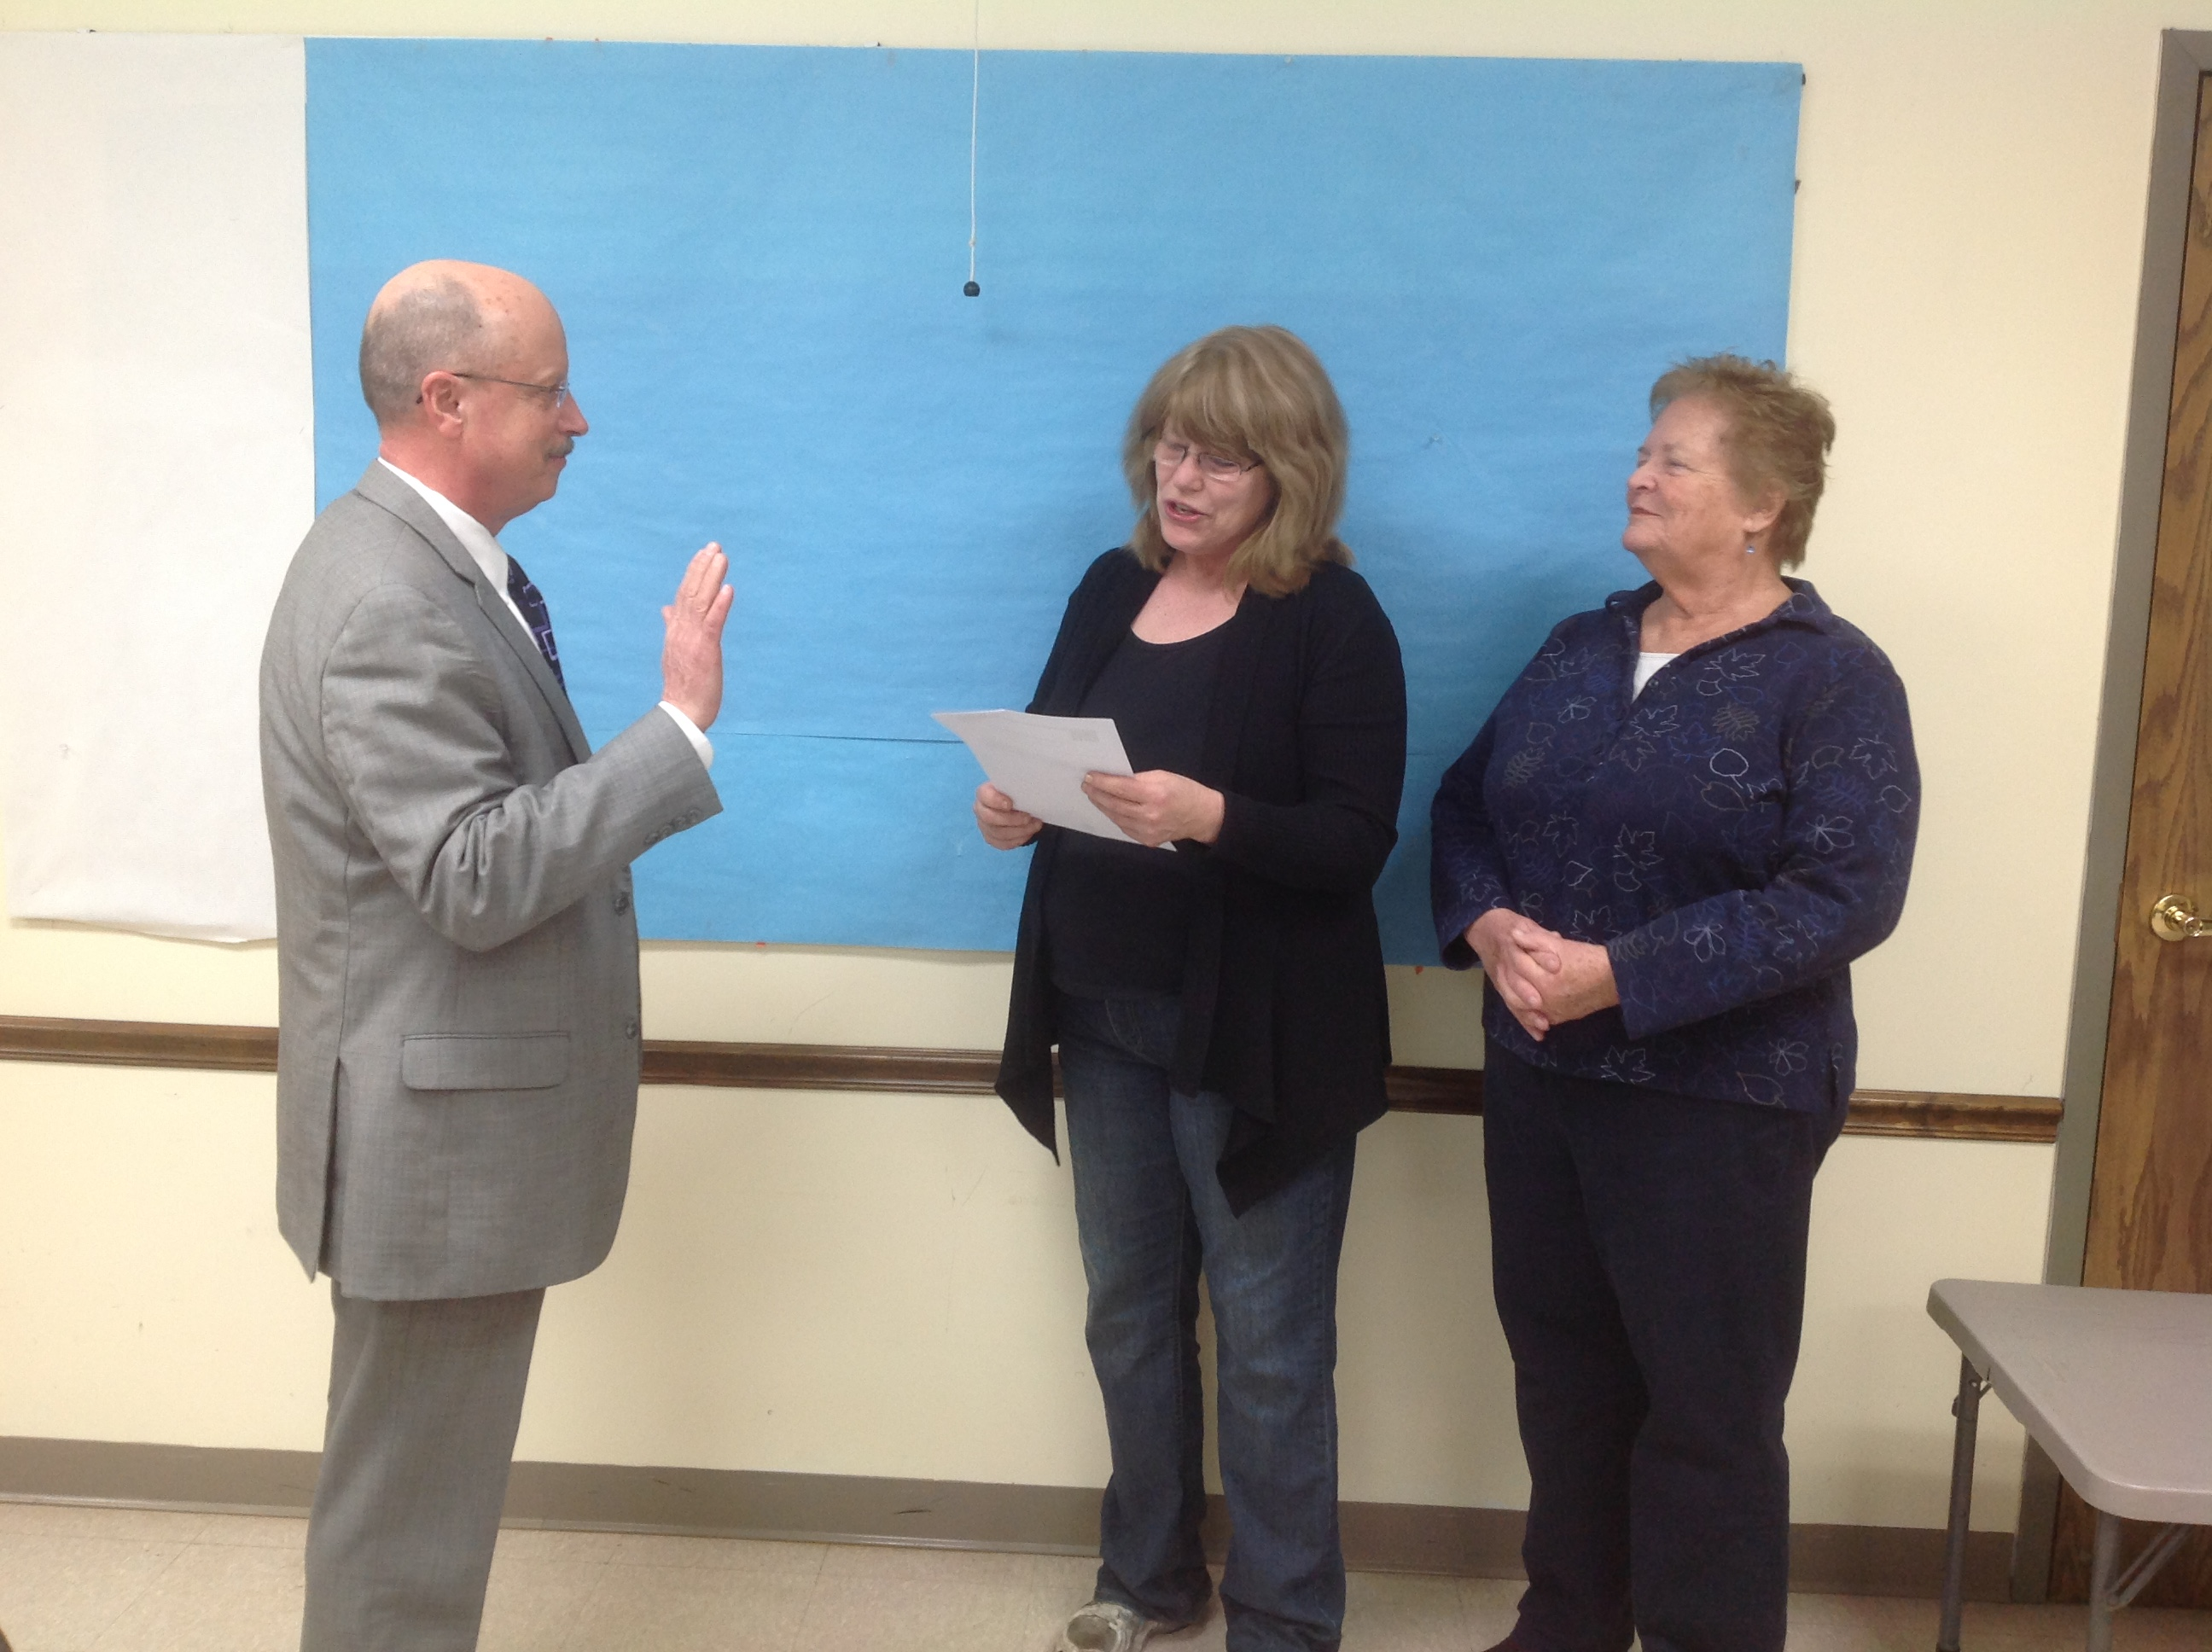 Guy Forthofer was sworn in as the newest member of the Mt. Sterling Public Library and Museum boards.  He replaces Carolyn Tadlock, who's term expired.  Rebecca Burns (center), Secretary of the Mt. Sterling Chamber of Commerce, and Pat Baynes (far right), President of the Board, perform the duties of swearing in.